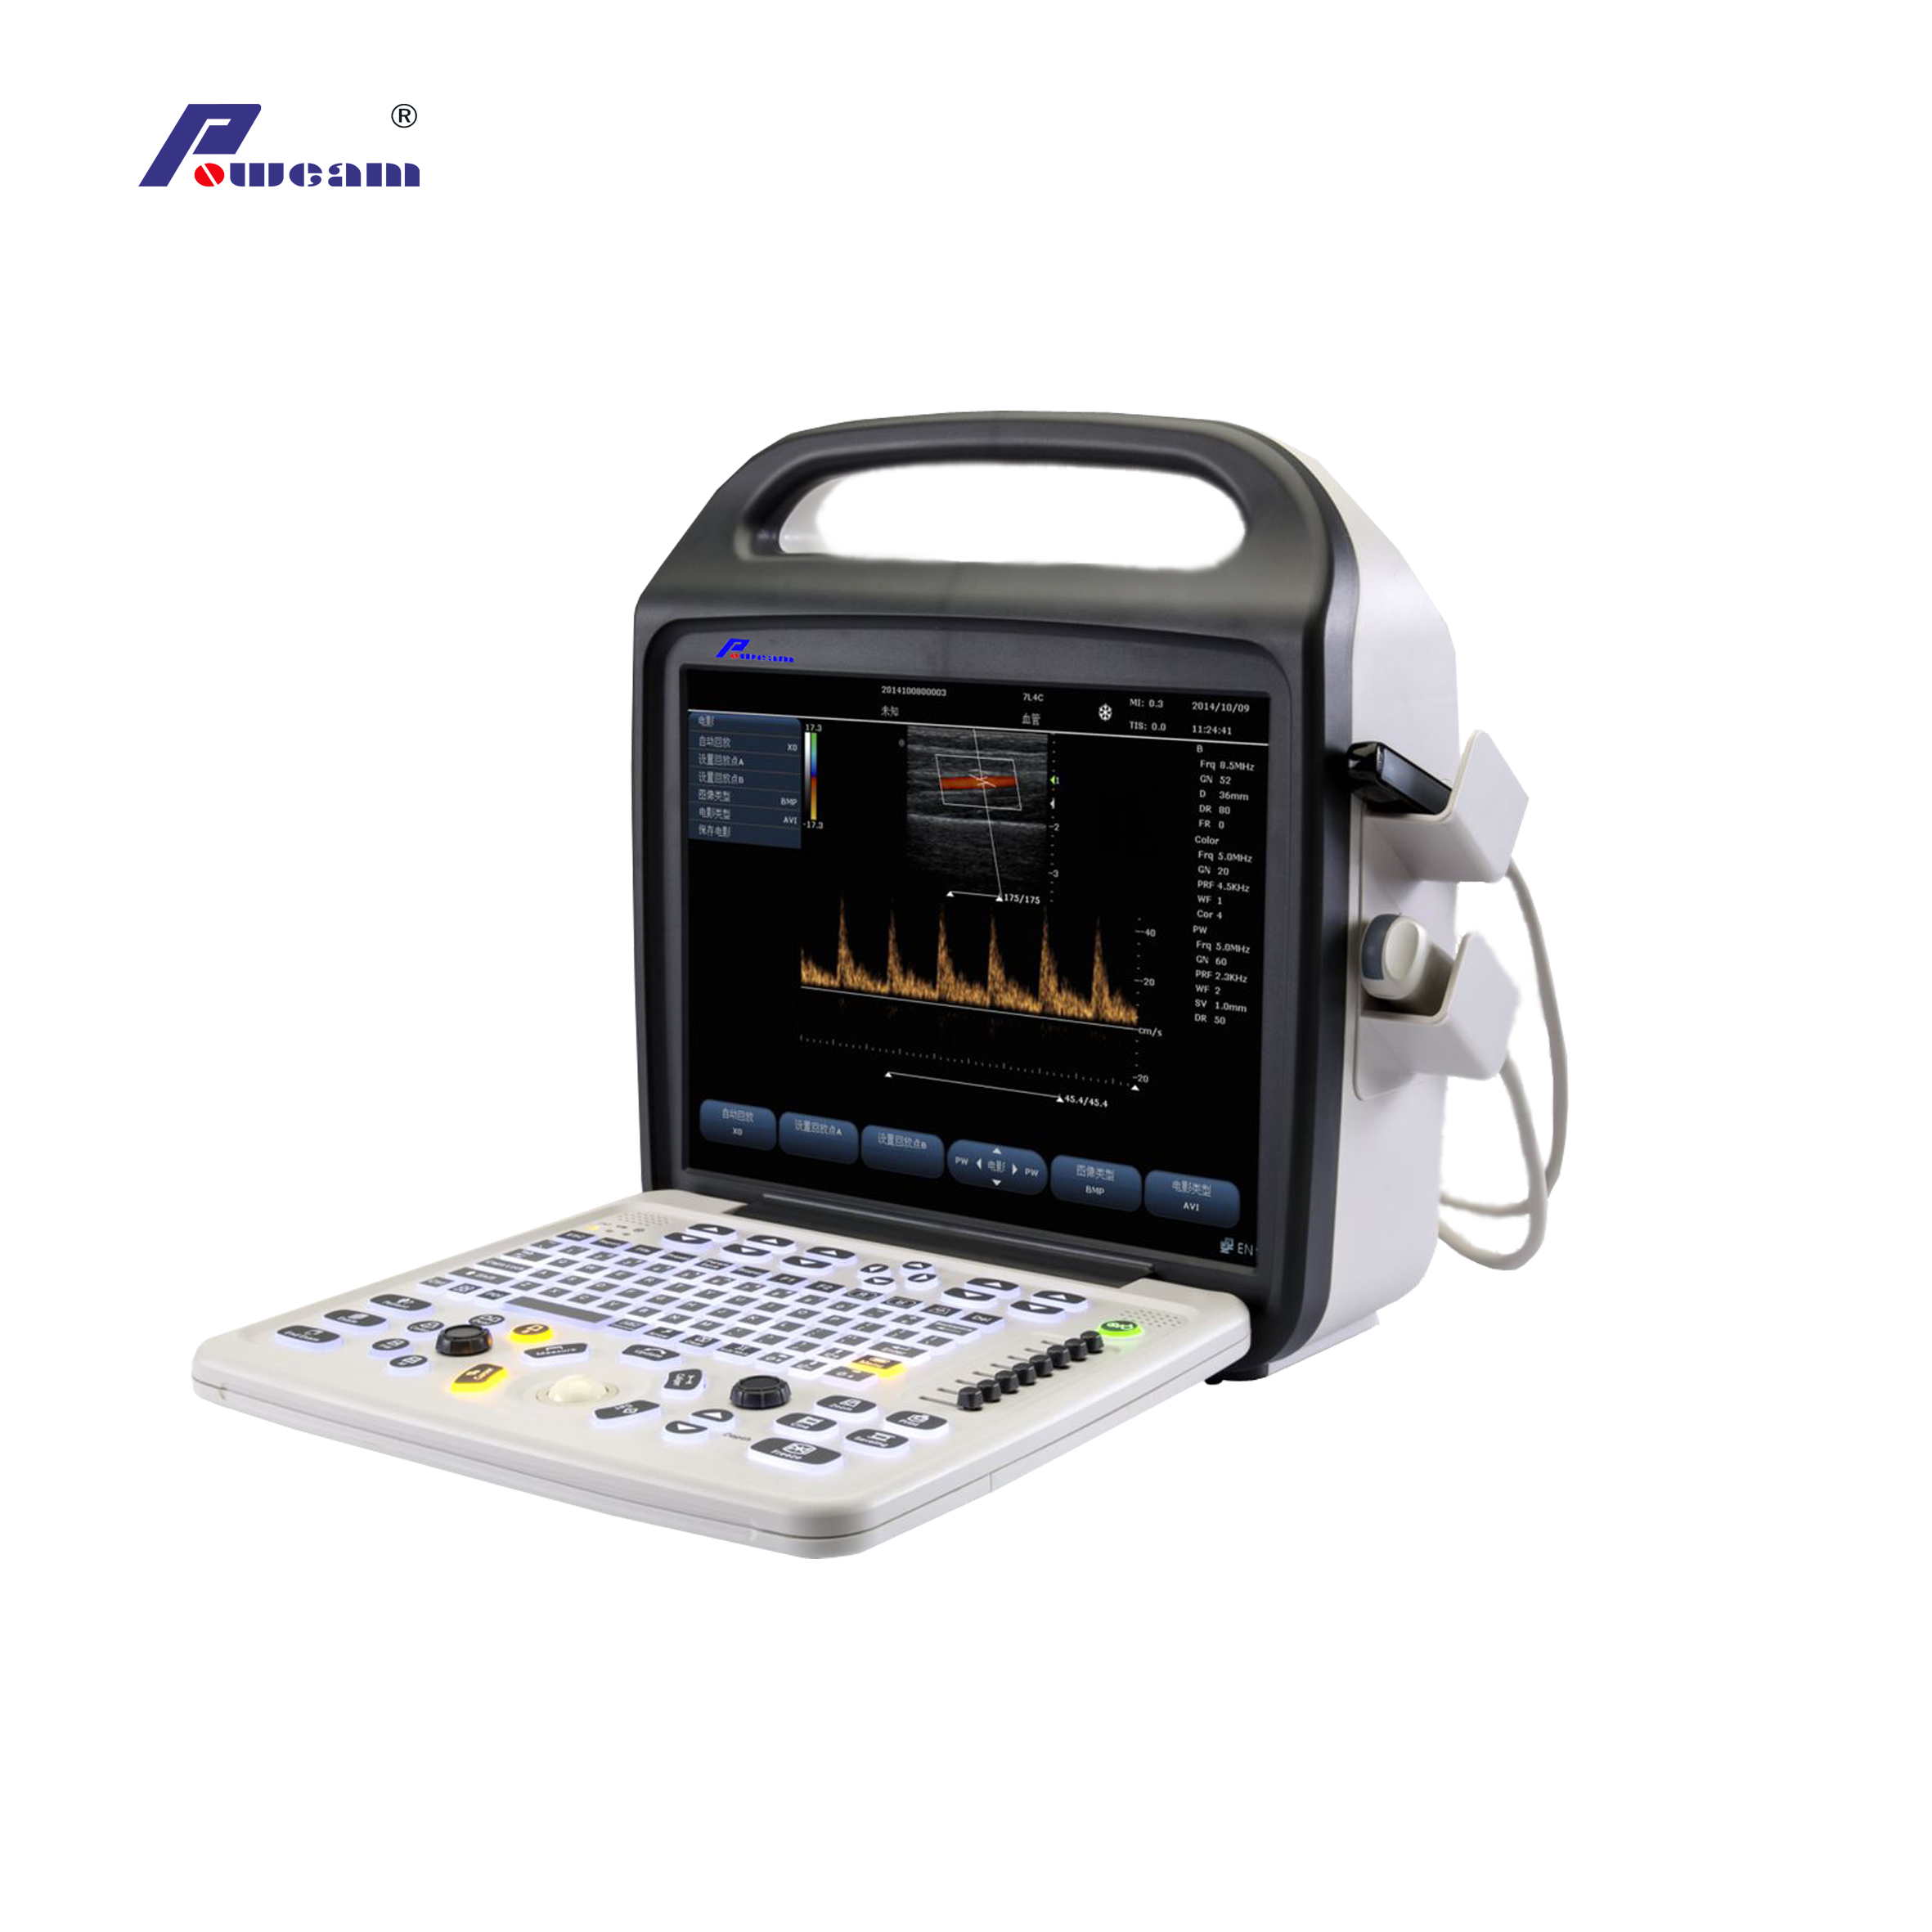 Portable Ultrasound Color Doppler Ultrasound Scanner (C10)